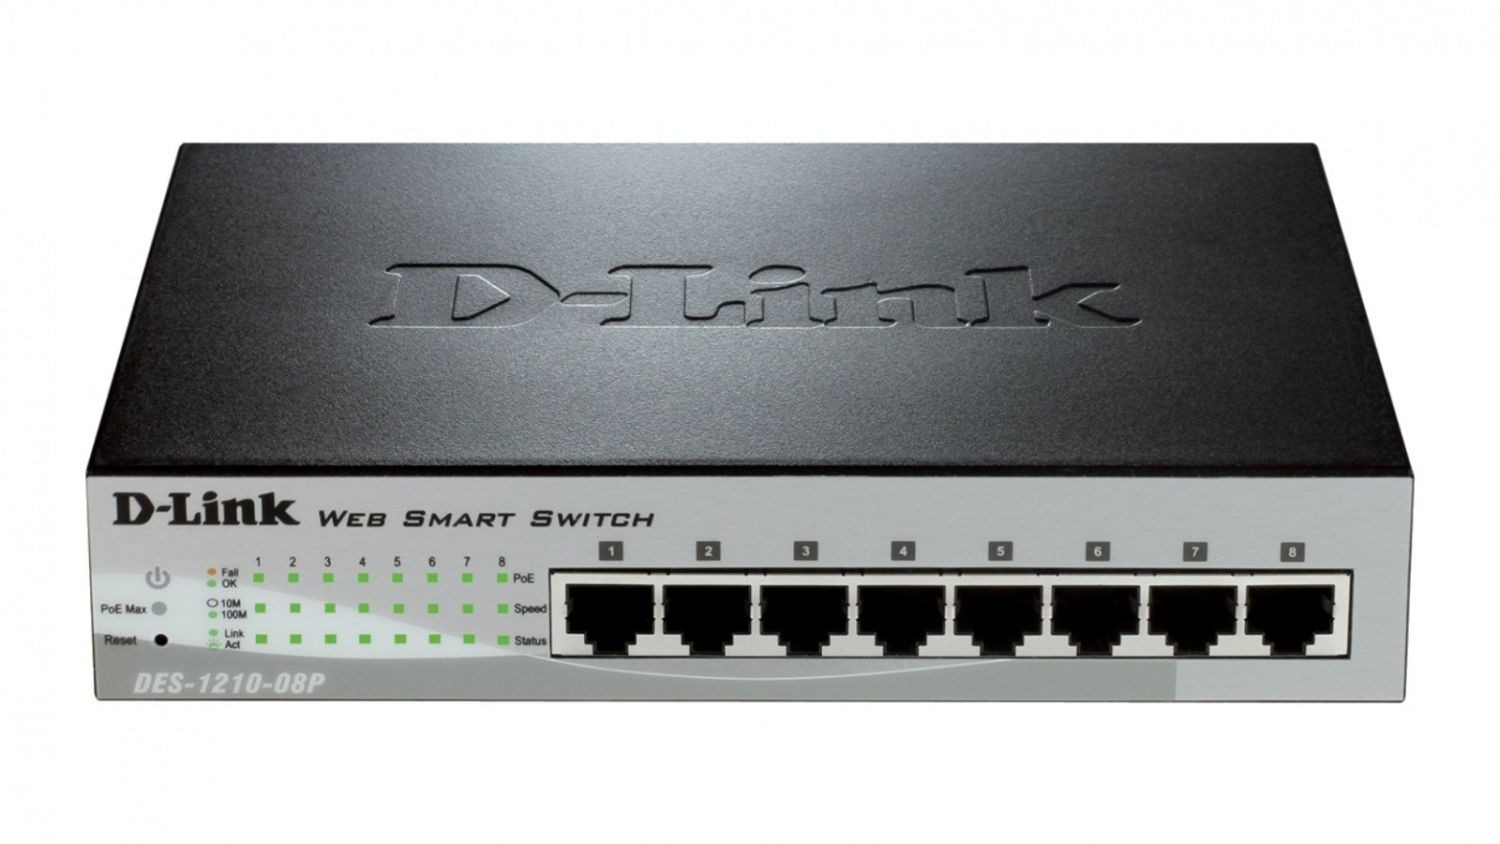 D-Link DES-1210-08P 8-port Fast Ethernet PoE Smart Switch